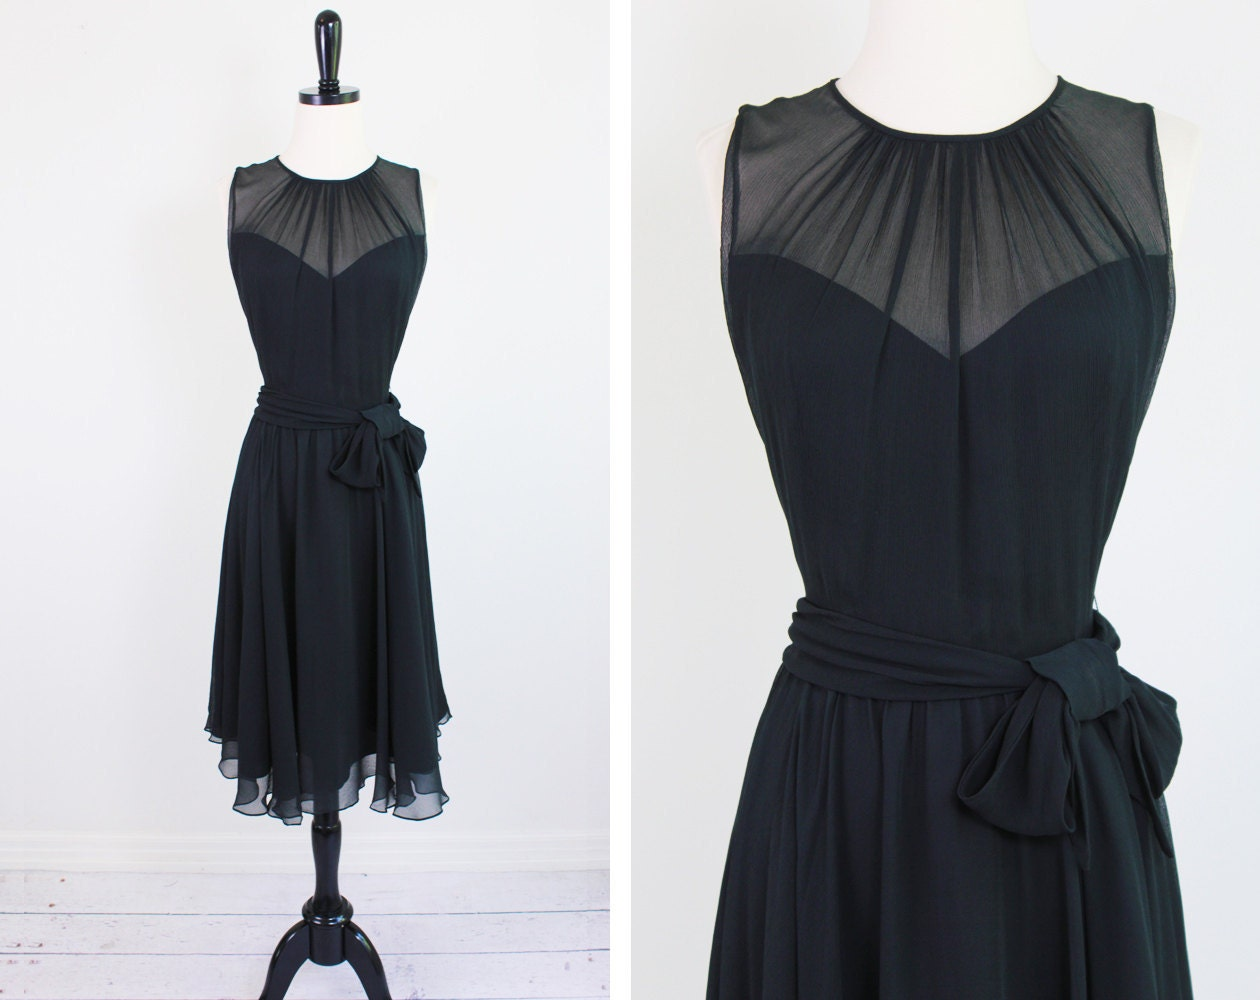 r e s e r v e d  black chiffon cocktail dress // by RococoVintage